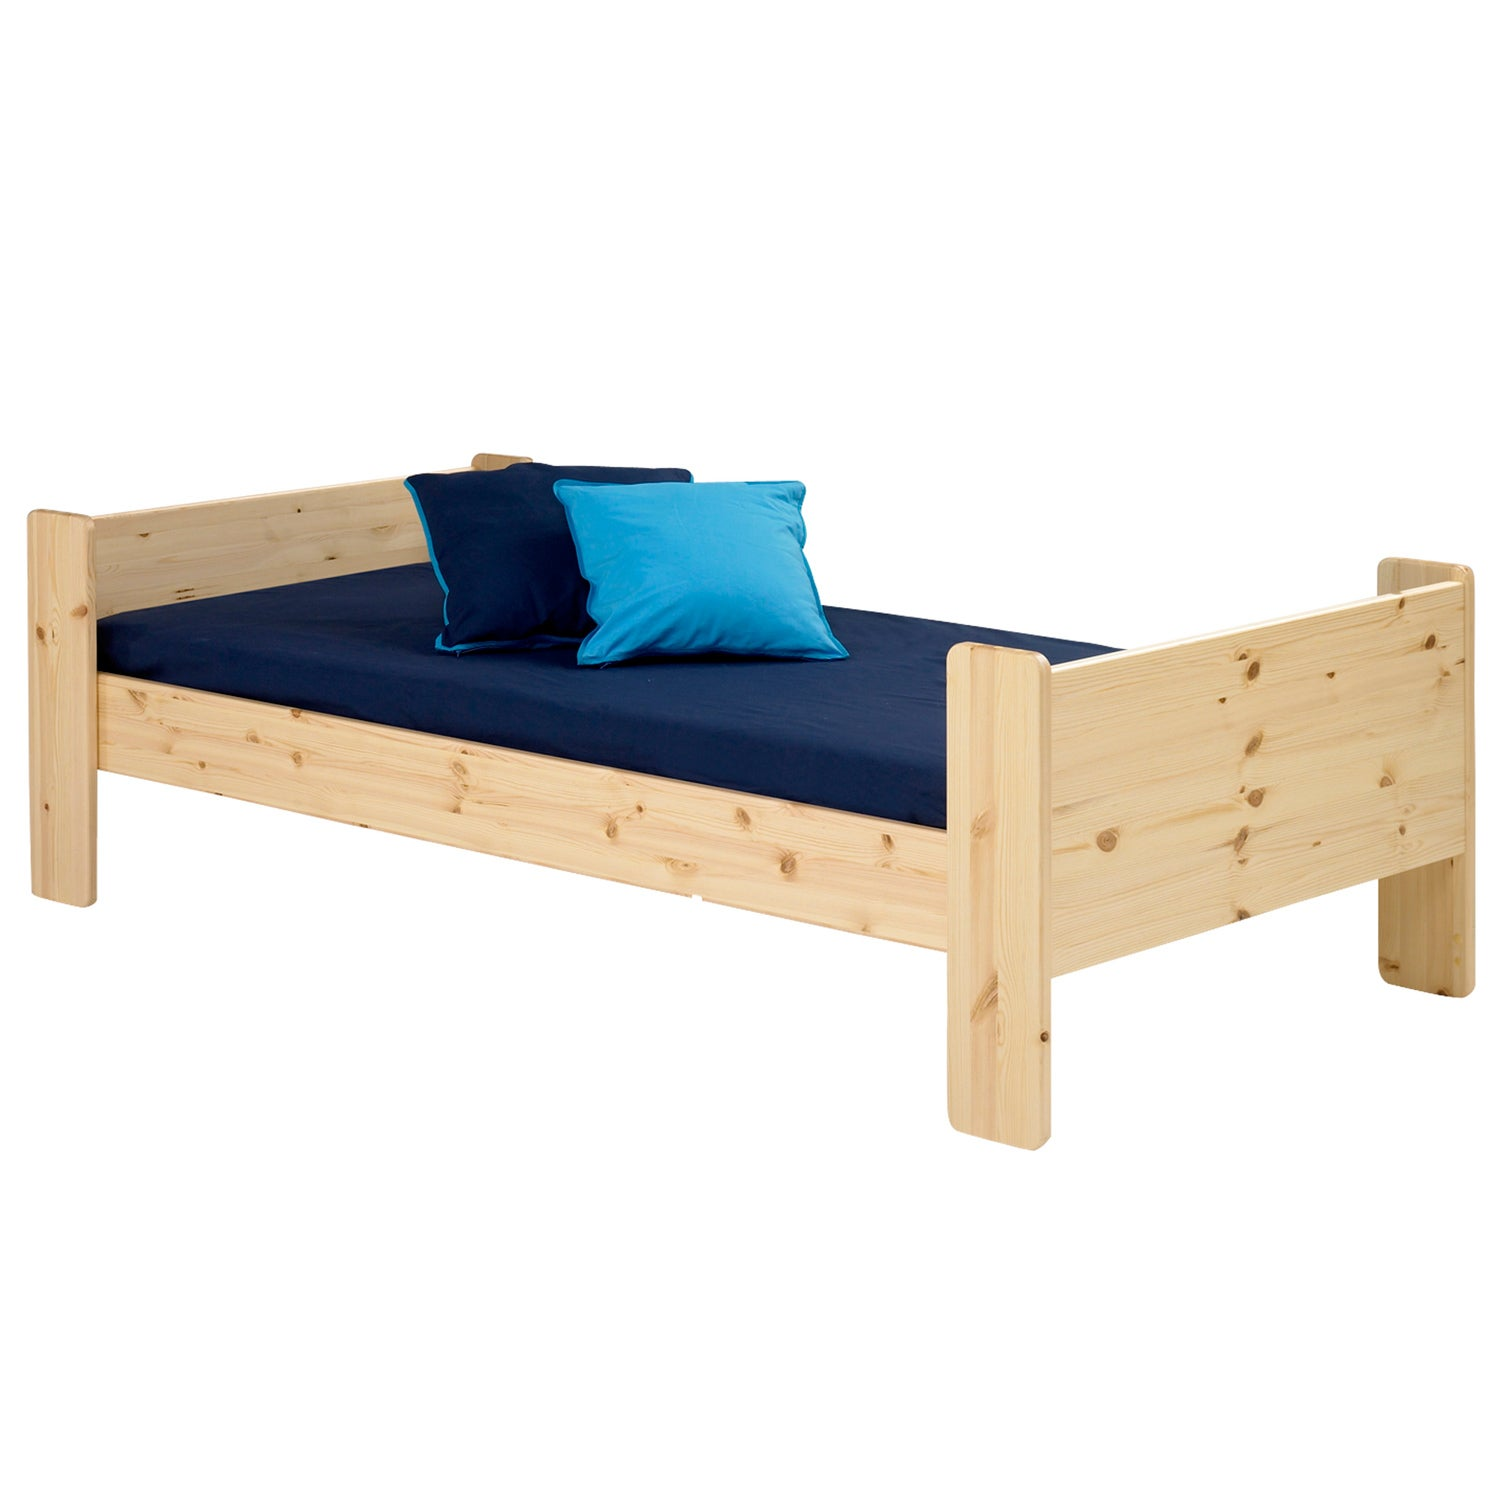 Popsicle Natural Twin-size Bed